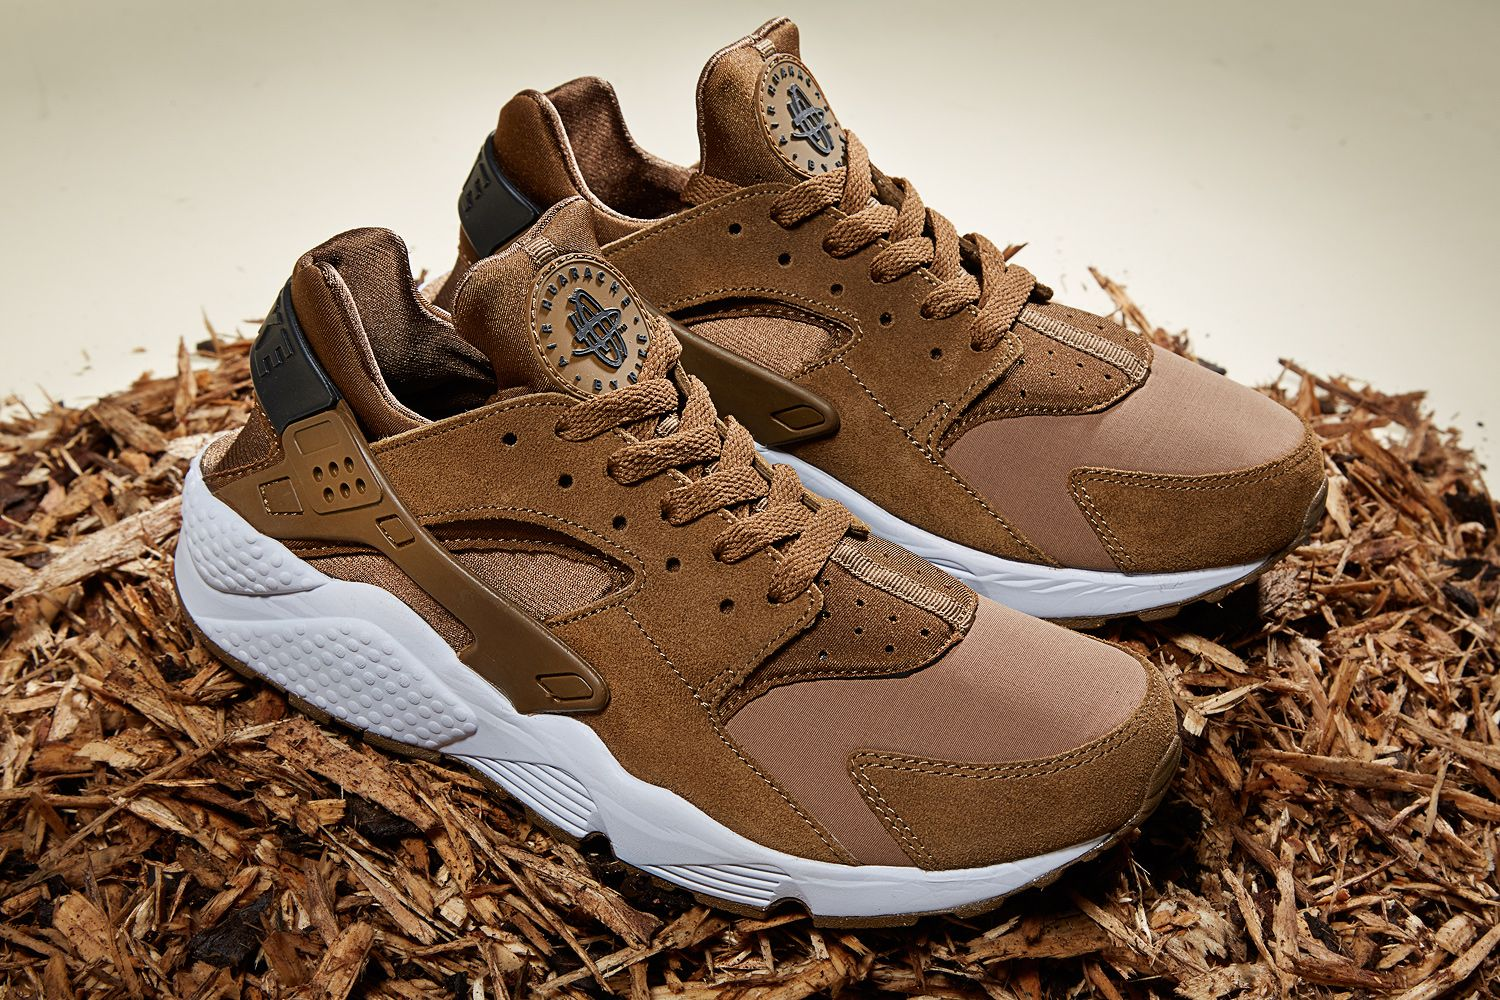 new style 5d7a9 175e7 Nike Air Huarache – 'Umber Brown' & 'Dark Grey' launching ...